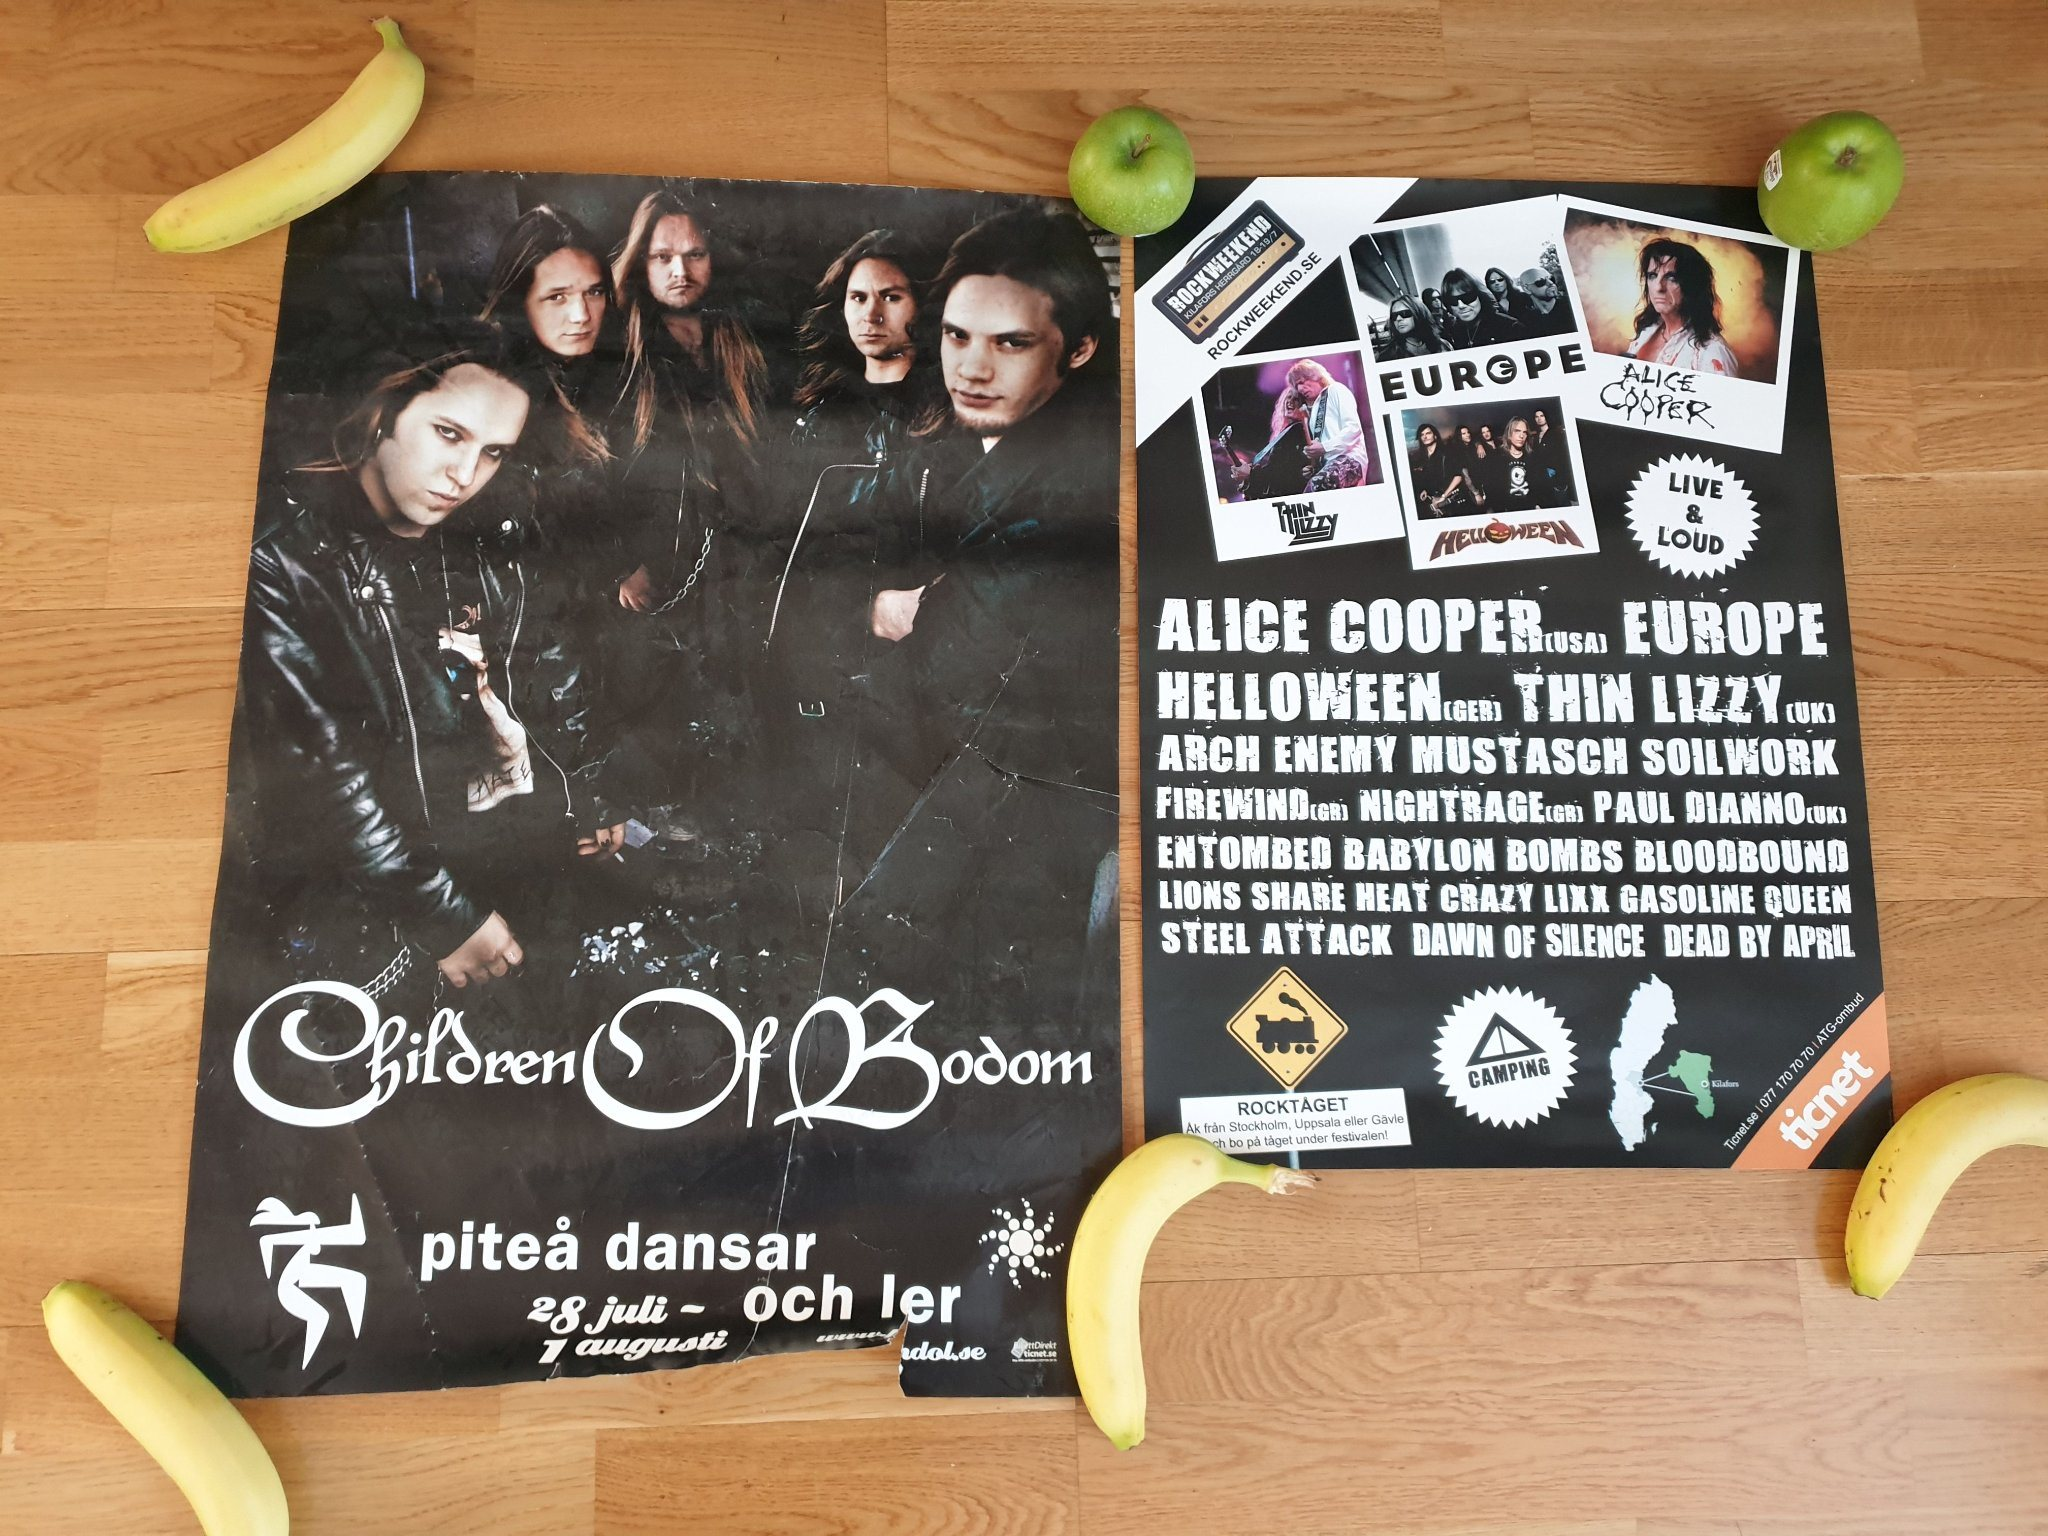 Children of bodom 2004 + rockweekend 2008 poster/affisch.Helloween,europe,Metal,